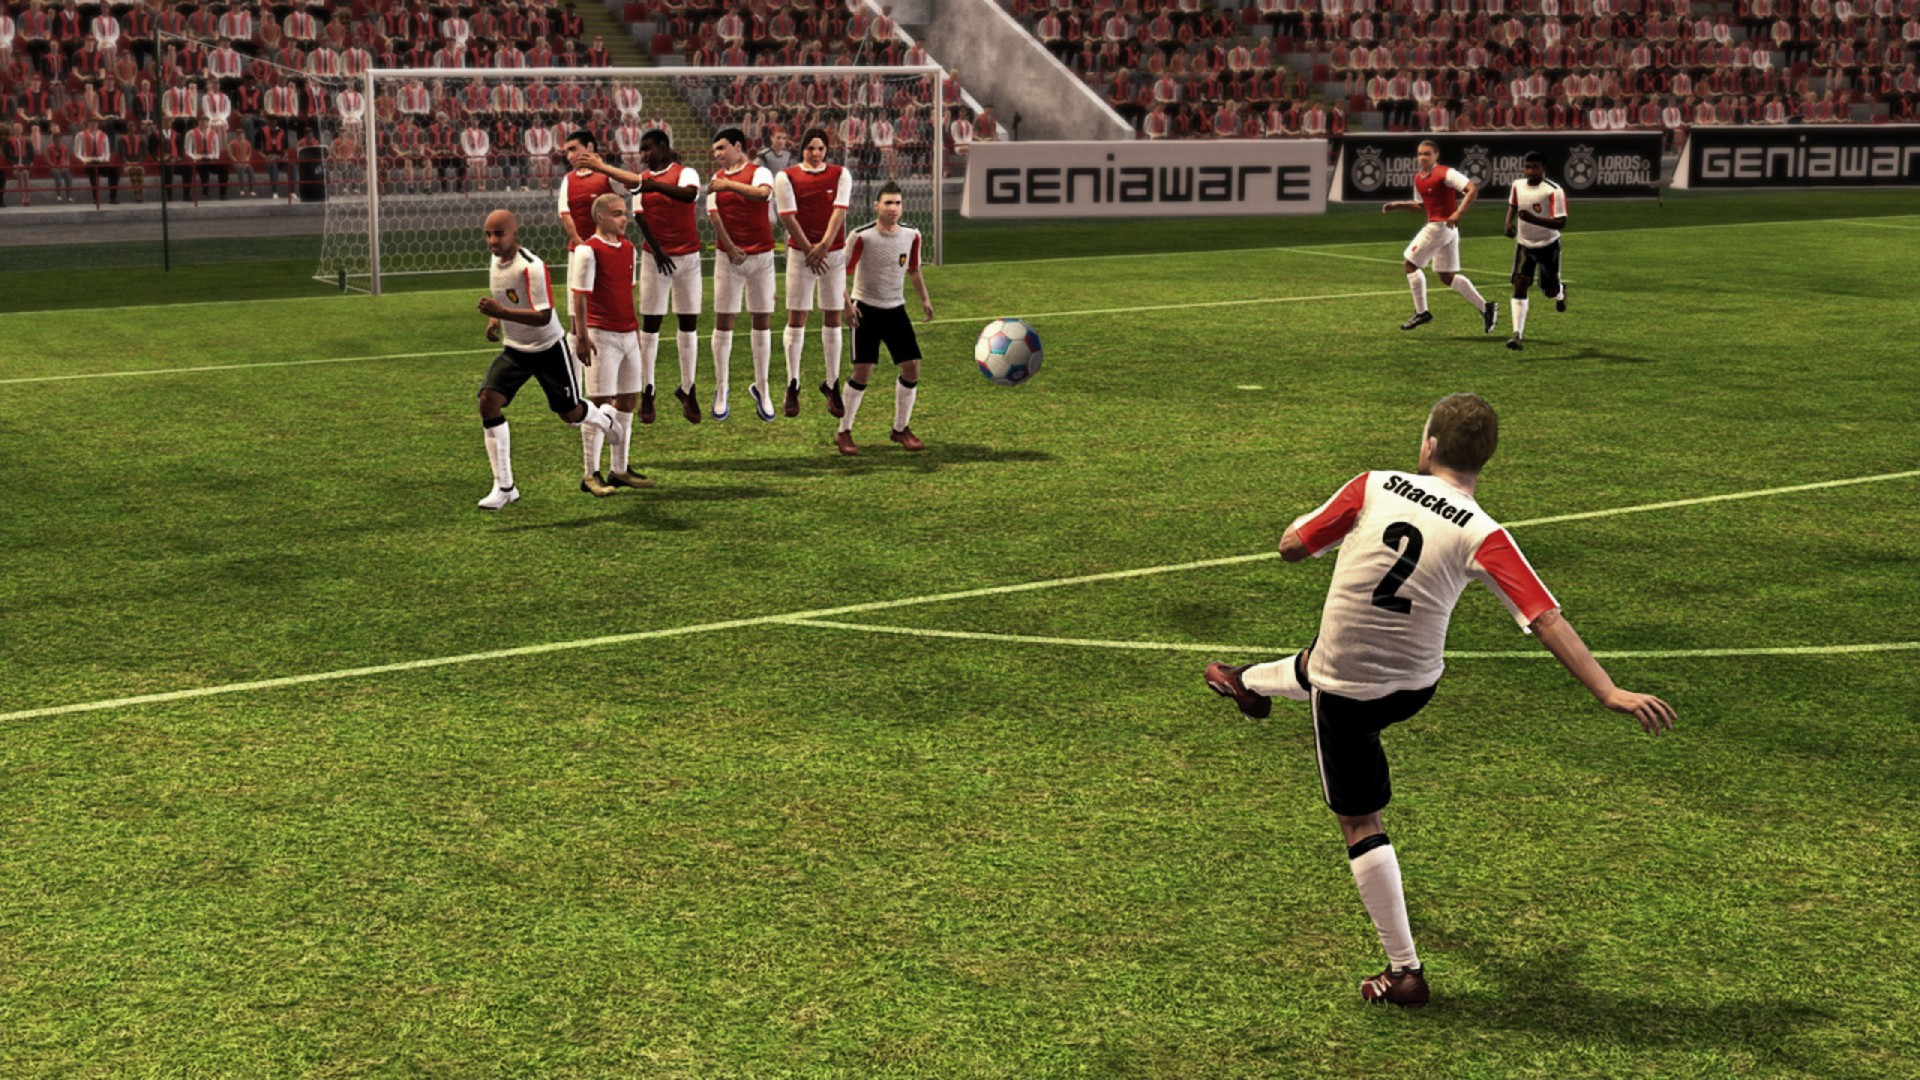 git football game full - HD 1920×1080